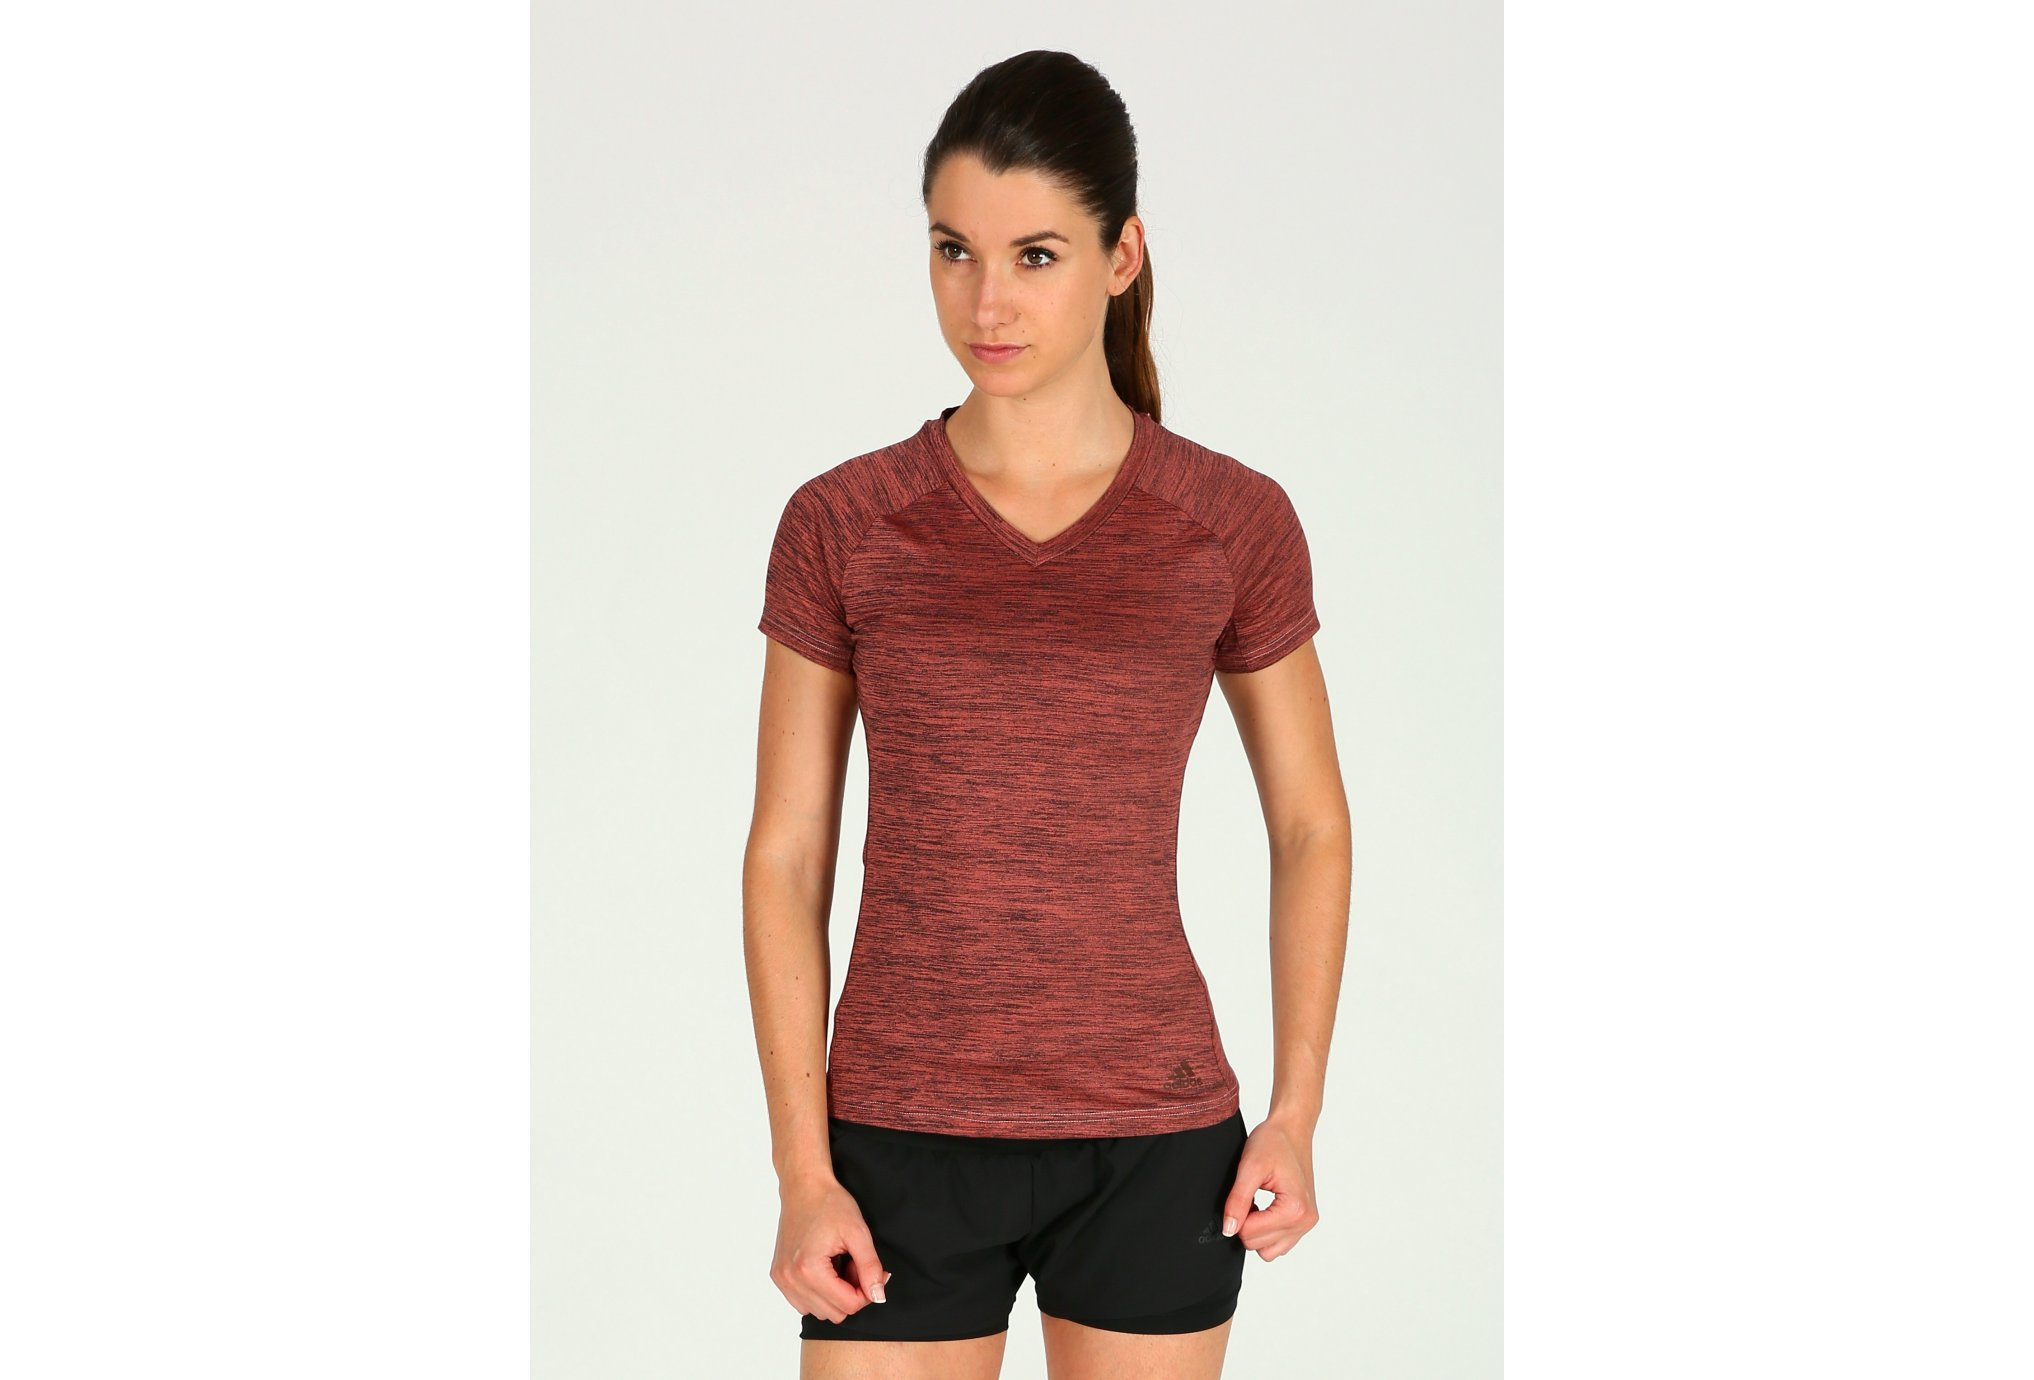 Adidas Freelift w vêtement running femme